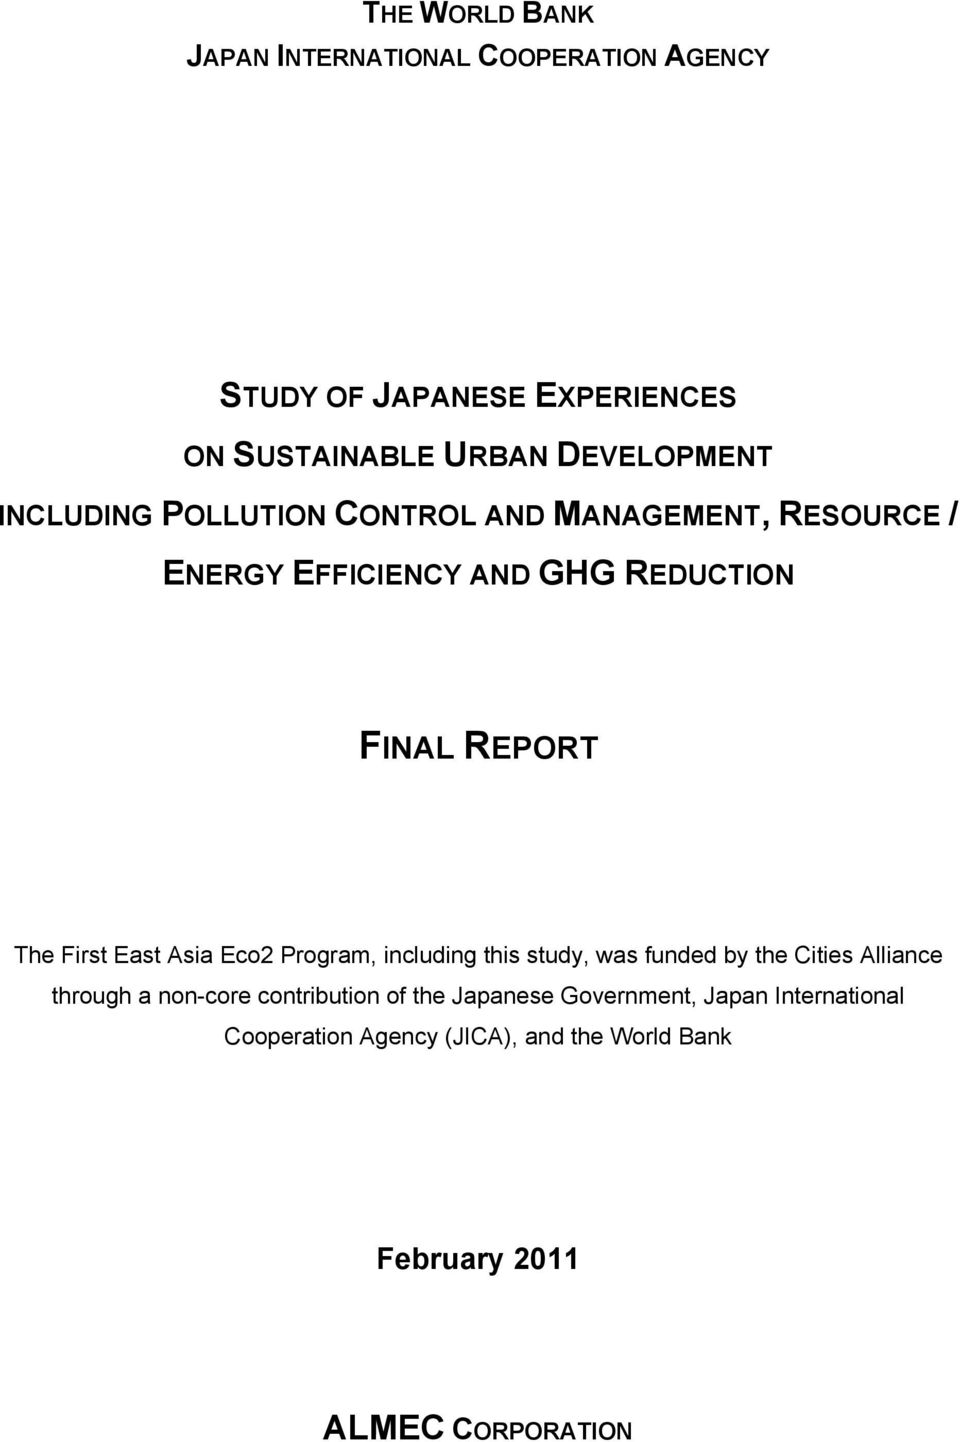 East Asia Eco2 Program, including this study, was funded by the Cities Alliance through a non-core contribution of